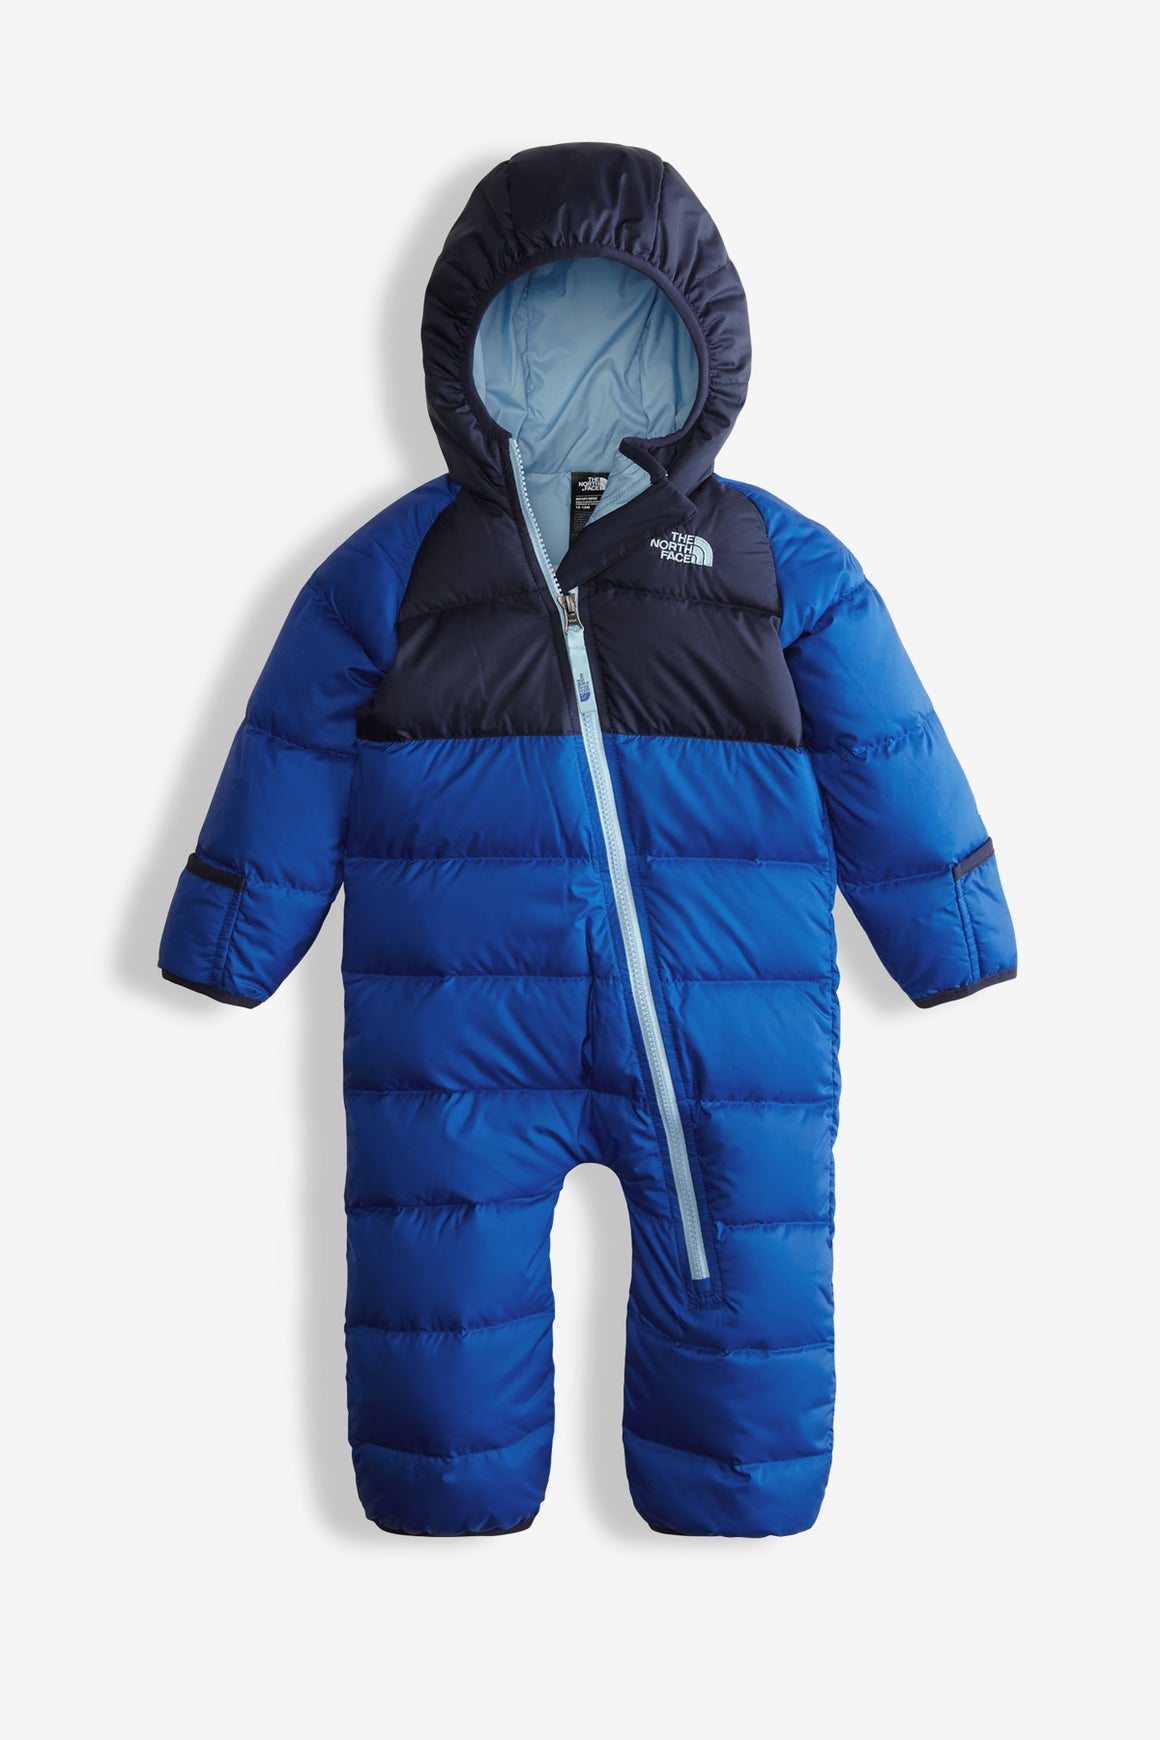 The North Face Infant Lil' Snuggler Down Suit - Bright Cobalt Blue